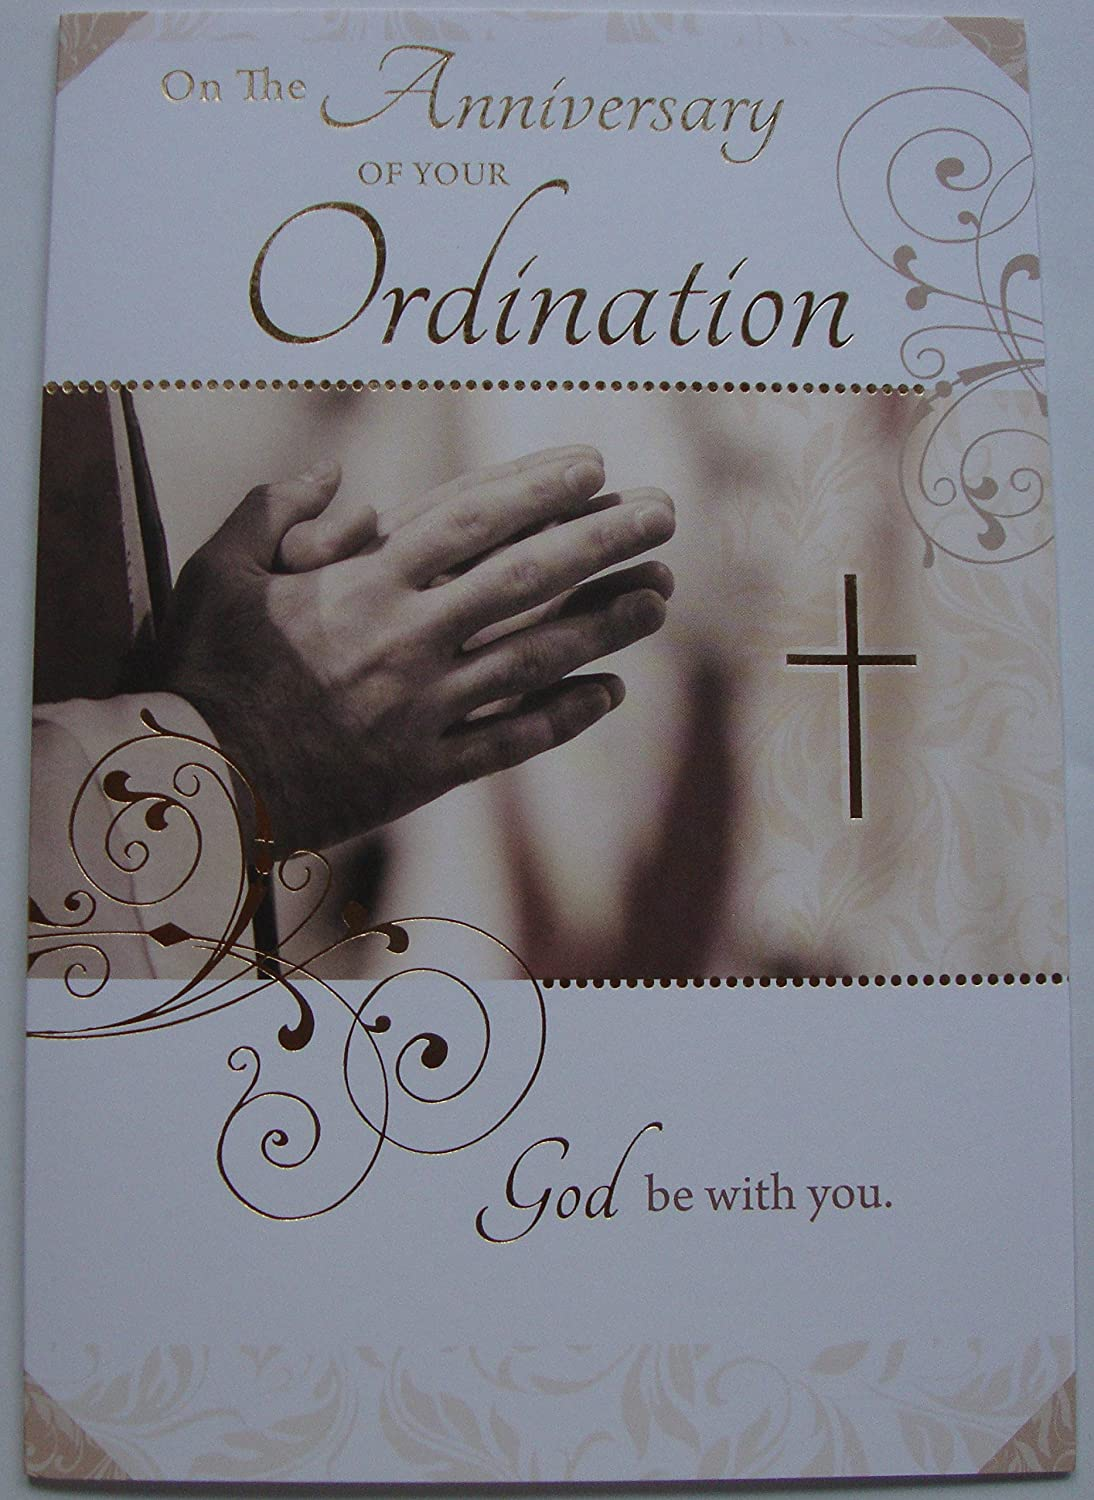 On The Anniversary Of Your Ordination Greetings Card Amazon